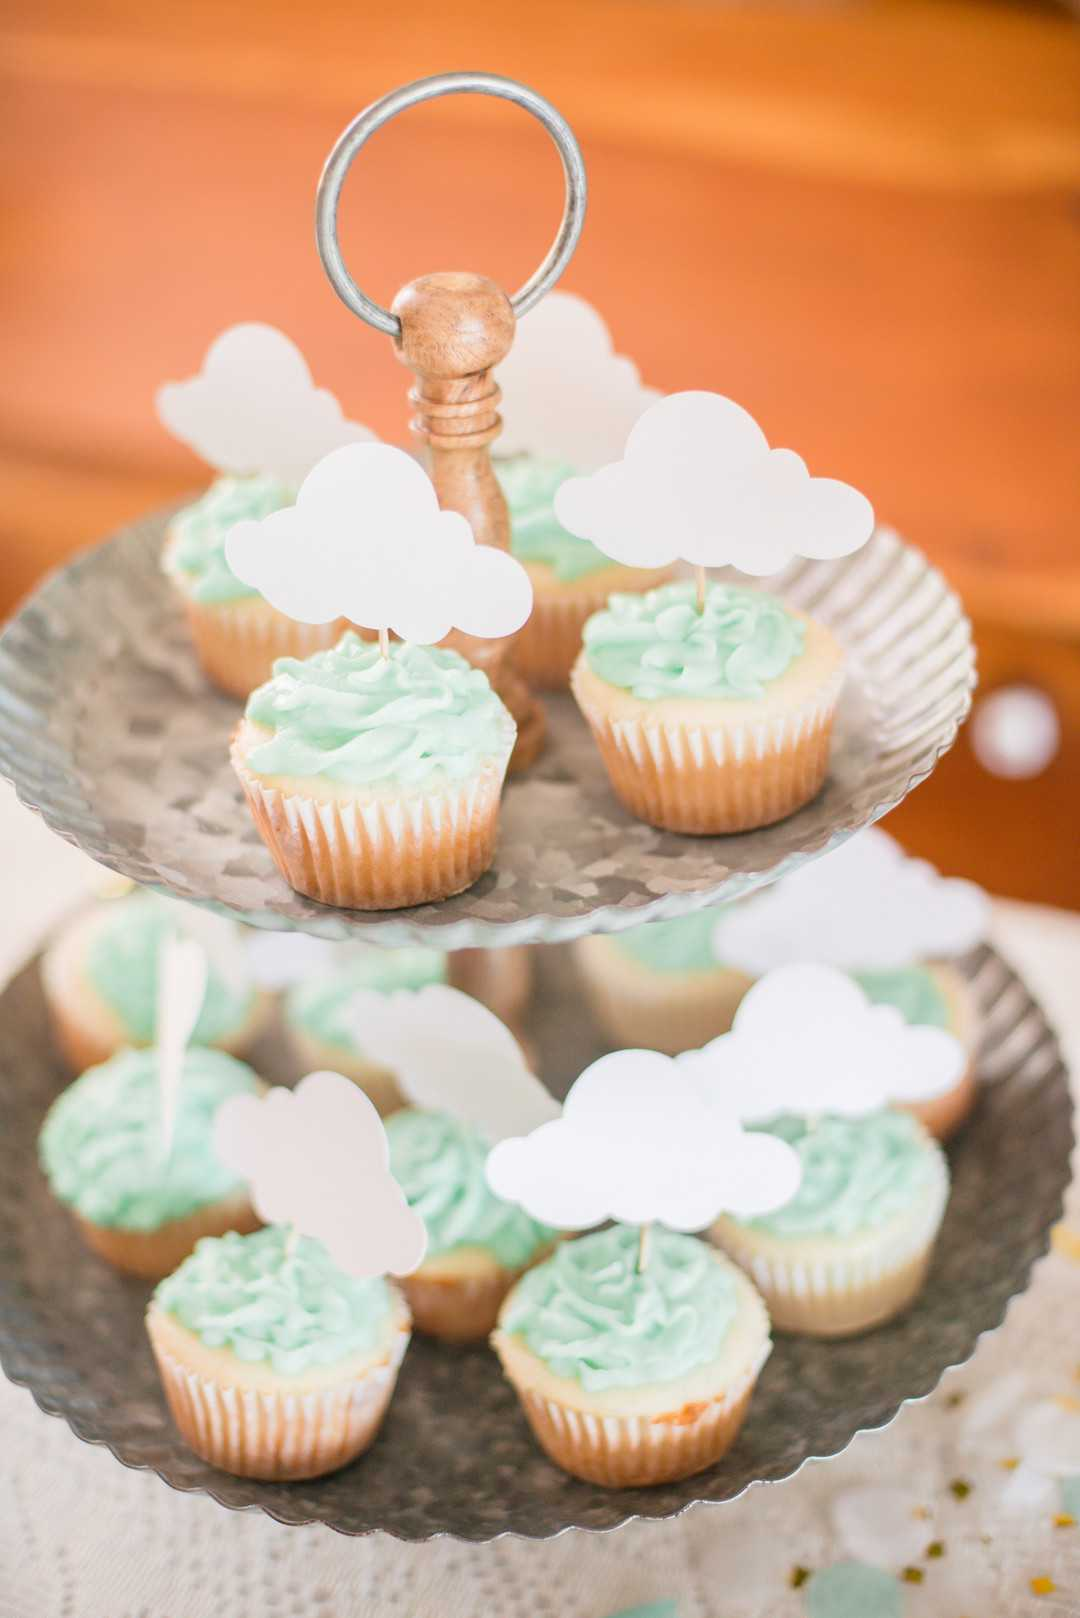 Cupcakes | An April Showers Brings May Flowers Baby Shower | Kate Aspen